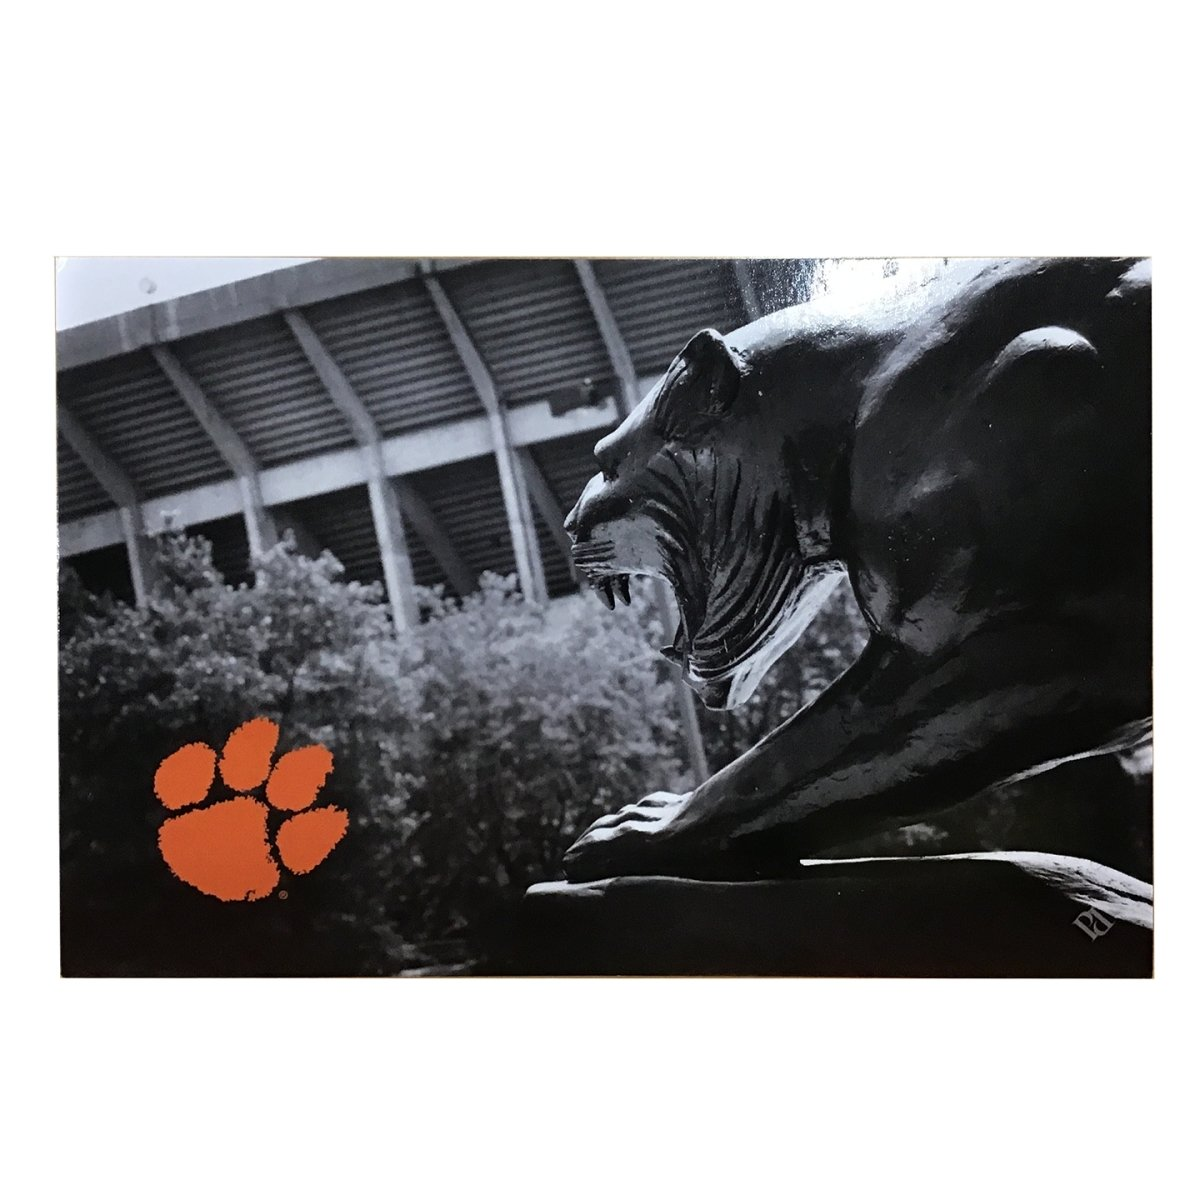 Tiger Statue Postcard Black and White With Orange Paw - Mr. Knickerbocker